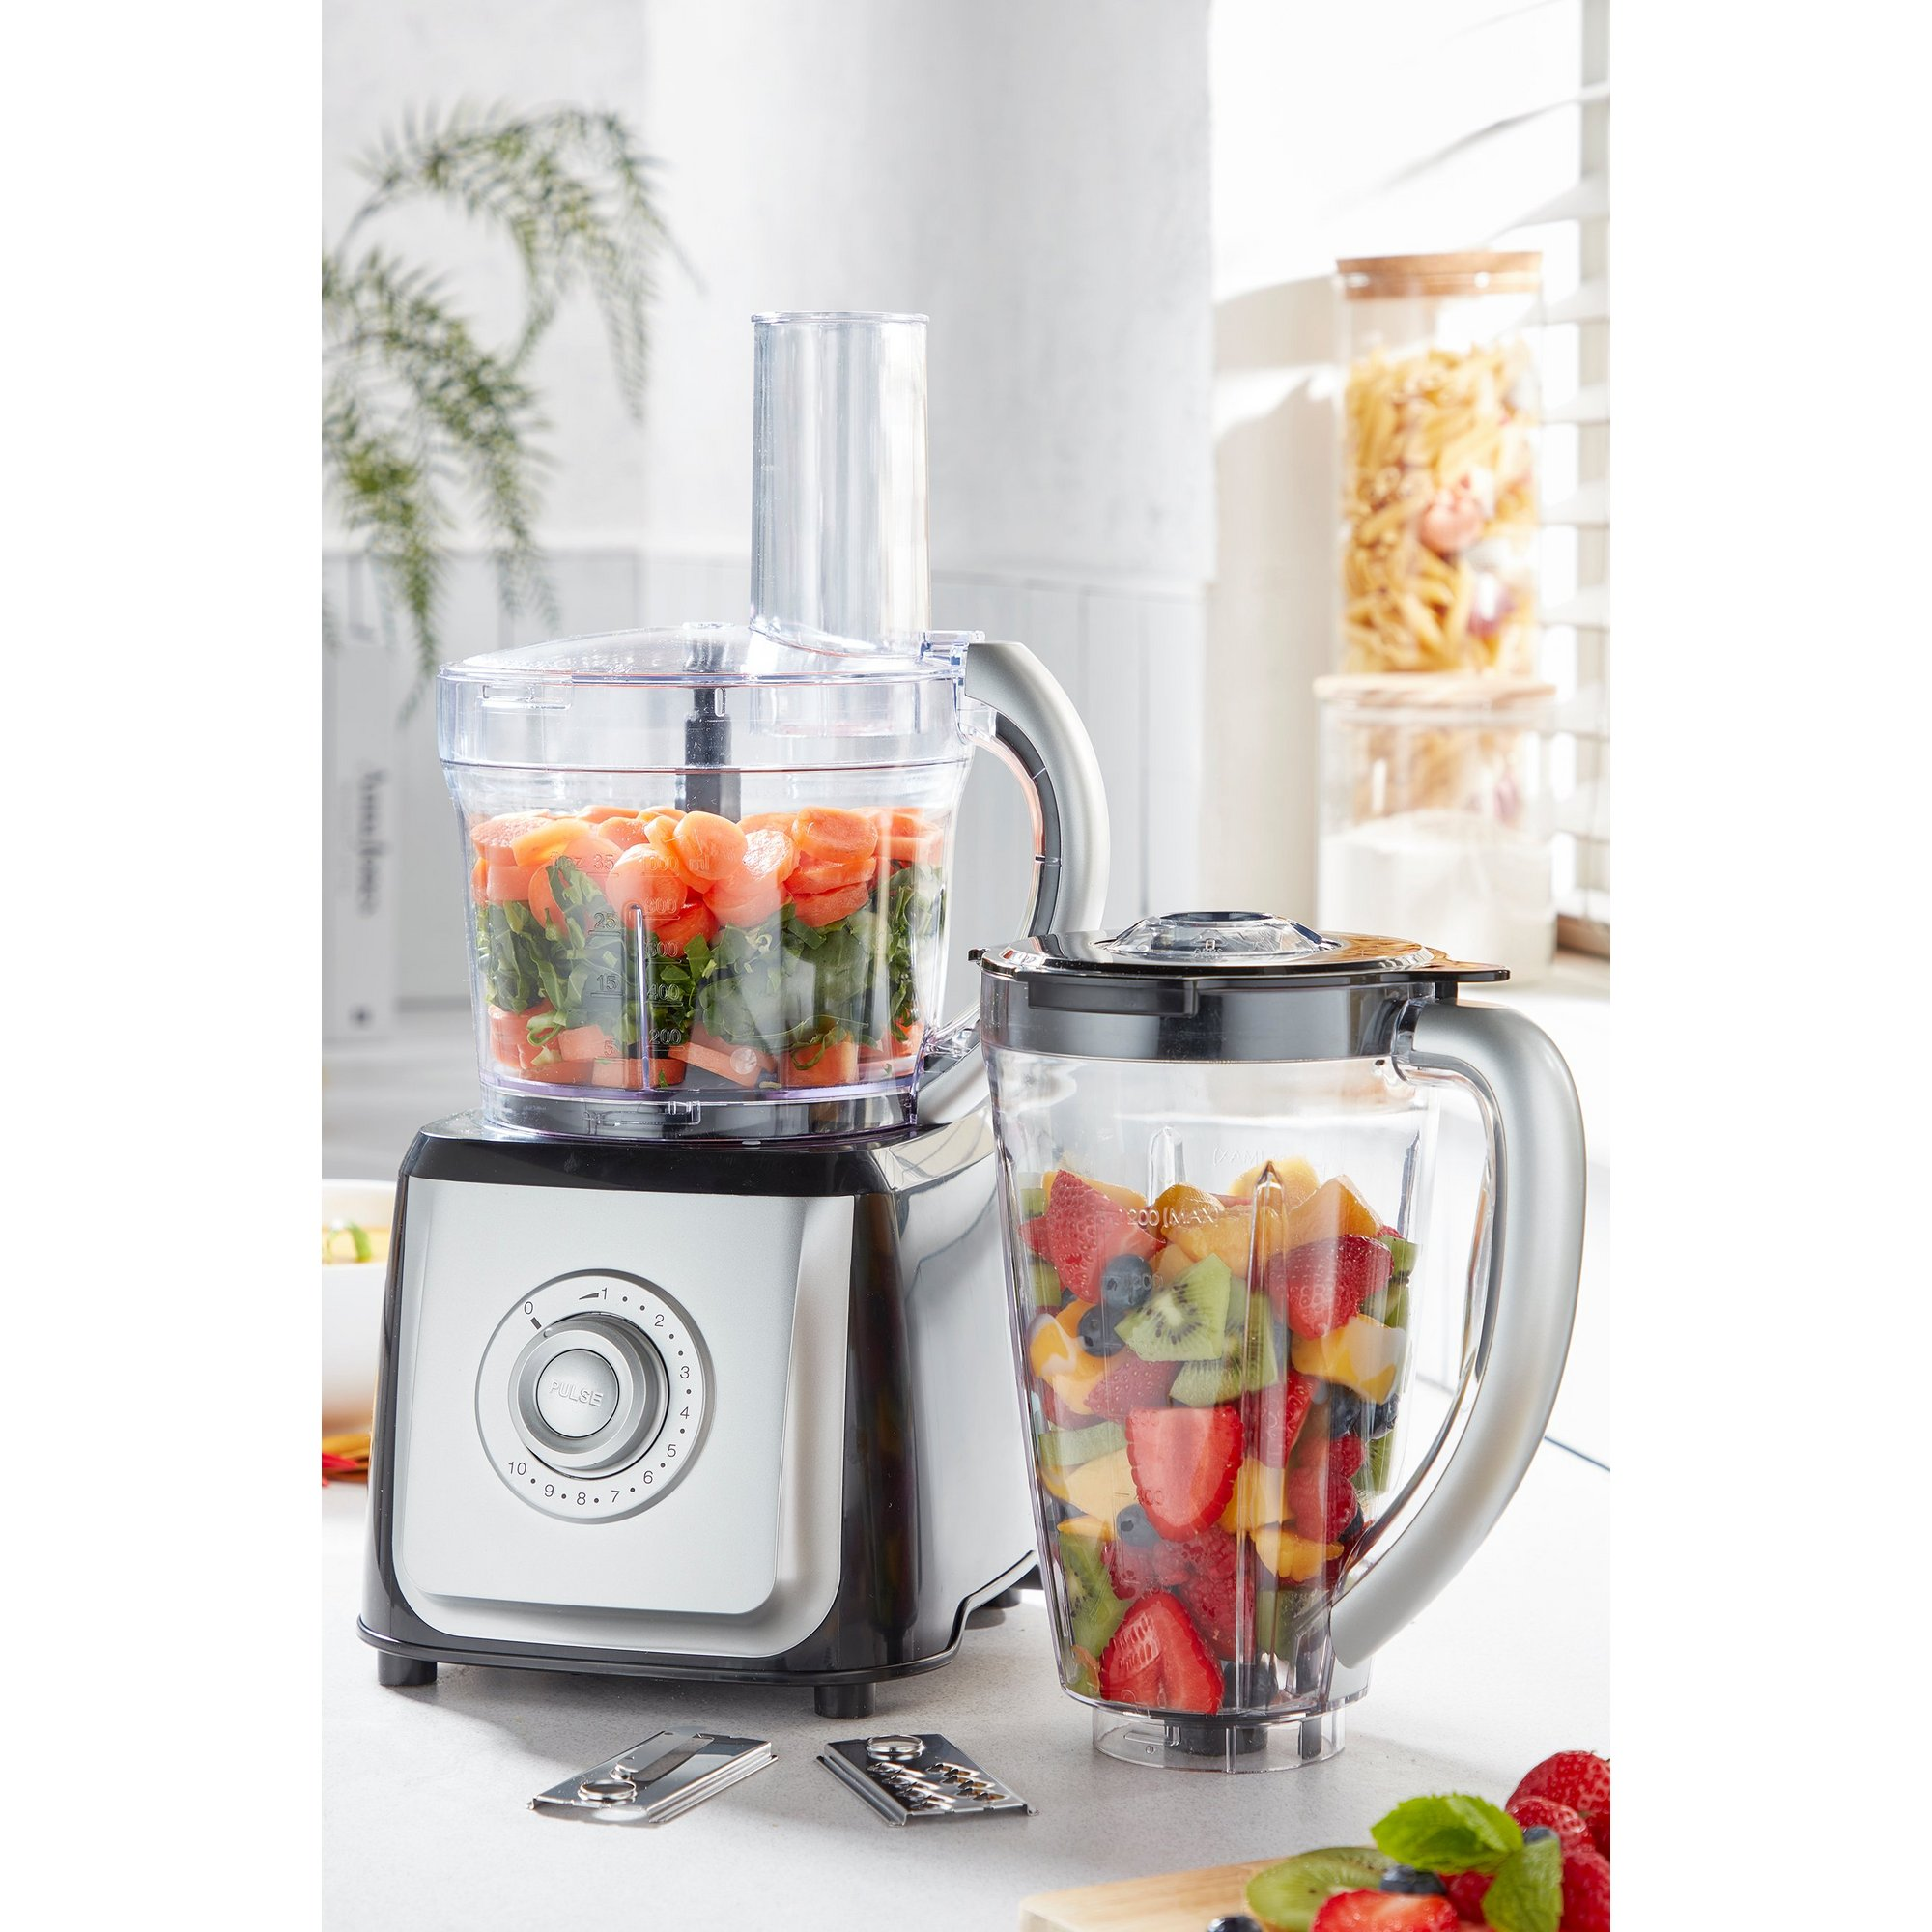 Image of 2-in-1 Food Processor